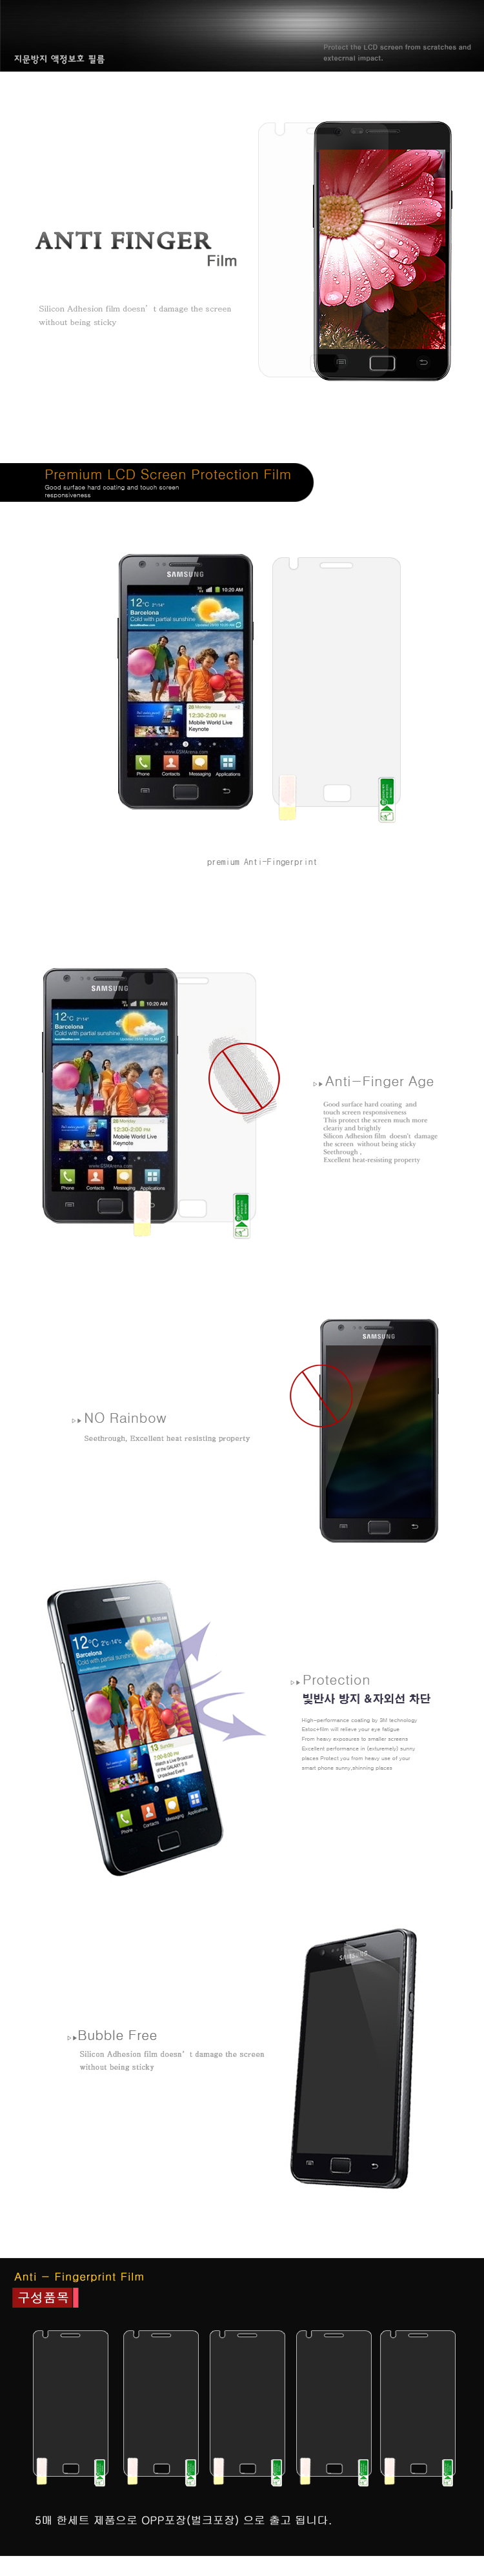 ANTI FINGER Premium LCD Screen Protection Film ANTI FINGER Age No Rainbow Protection 빛반사 방지 & 자외선 차단 Bubble Free